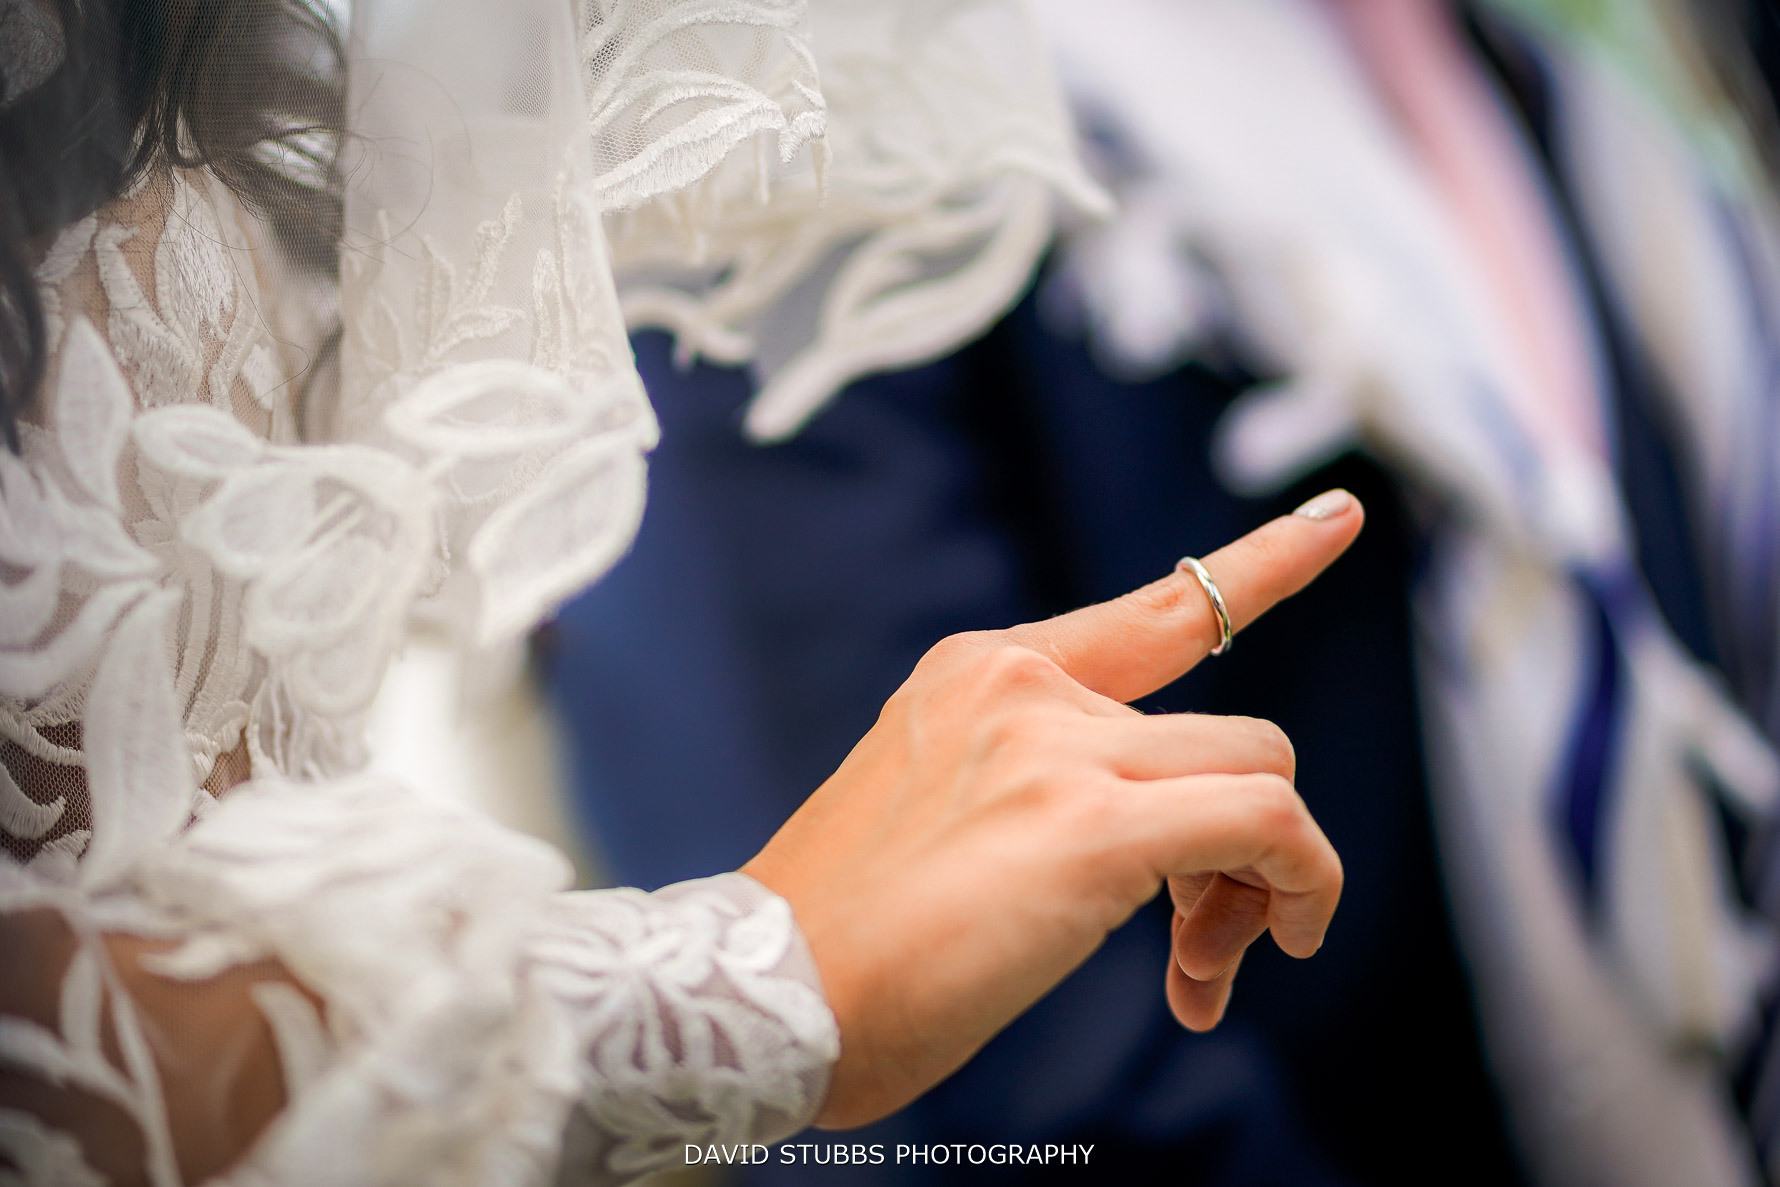 wedding ring being put on her finger